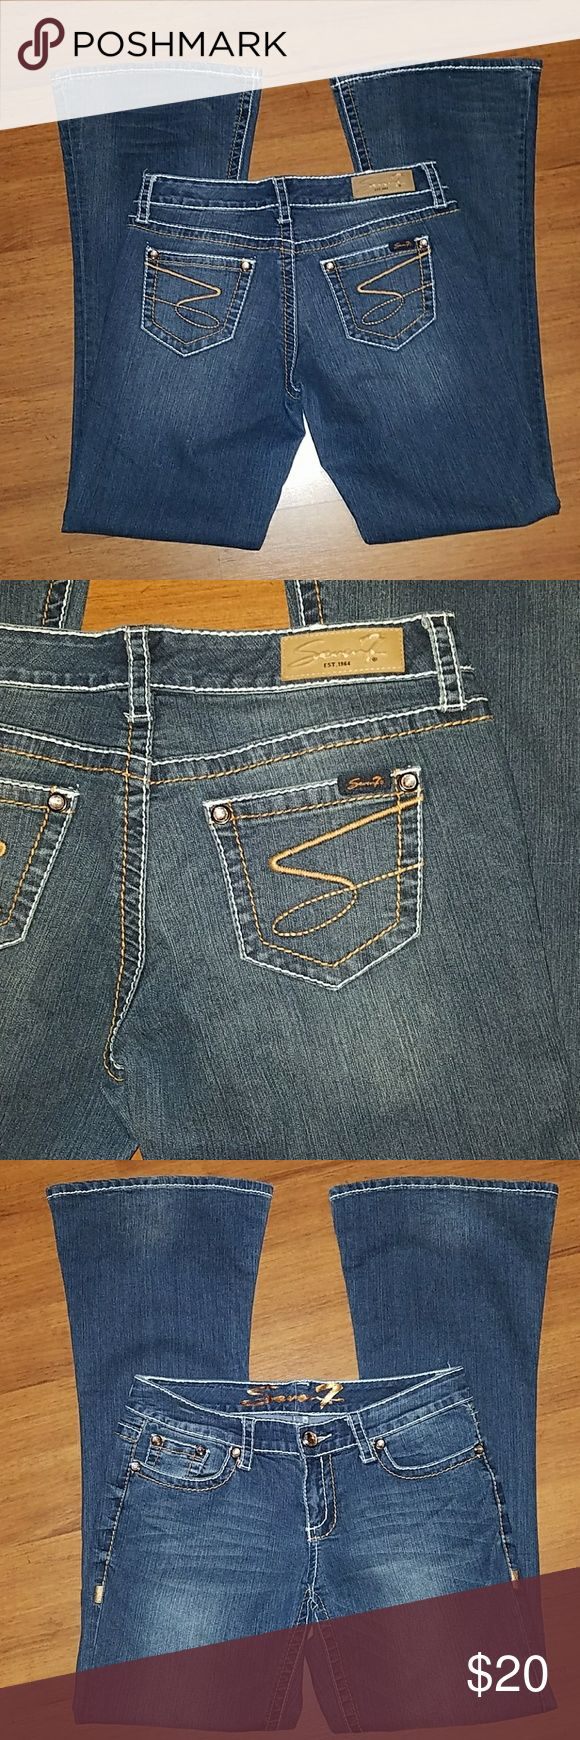 Seven7 Jeans size 30 Seven7 Jeans size 30. Inseam is 32.5 inches. Seven7 Jeans Flare & Wide Leg